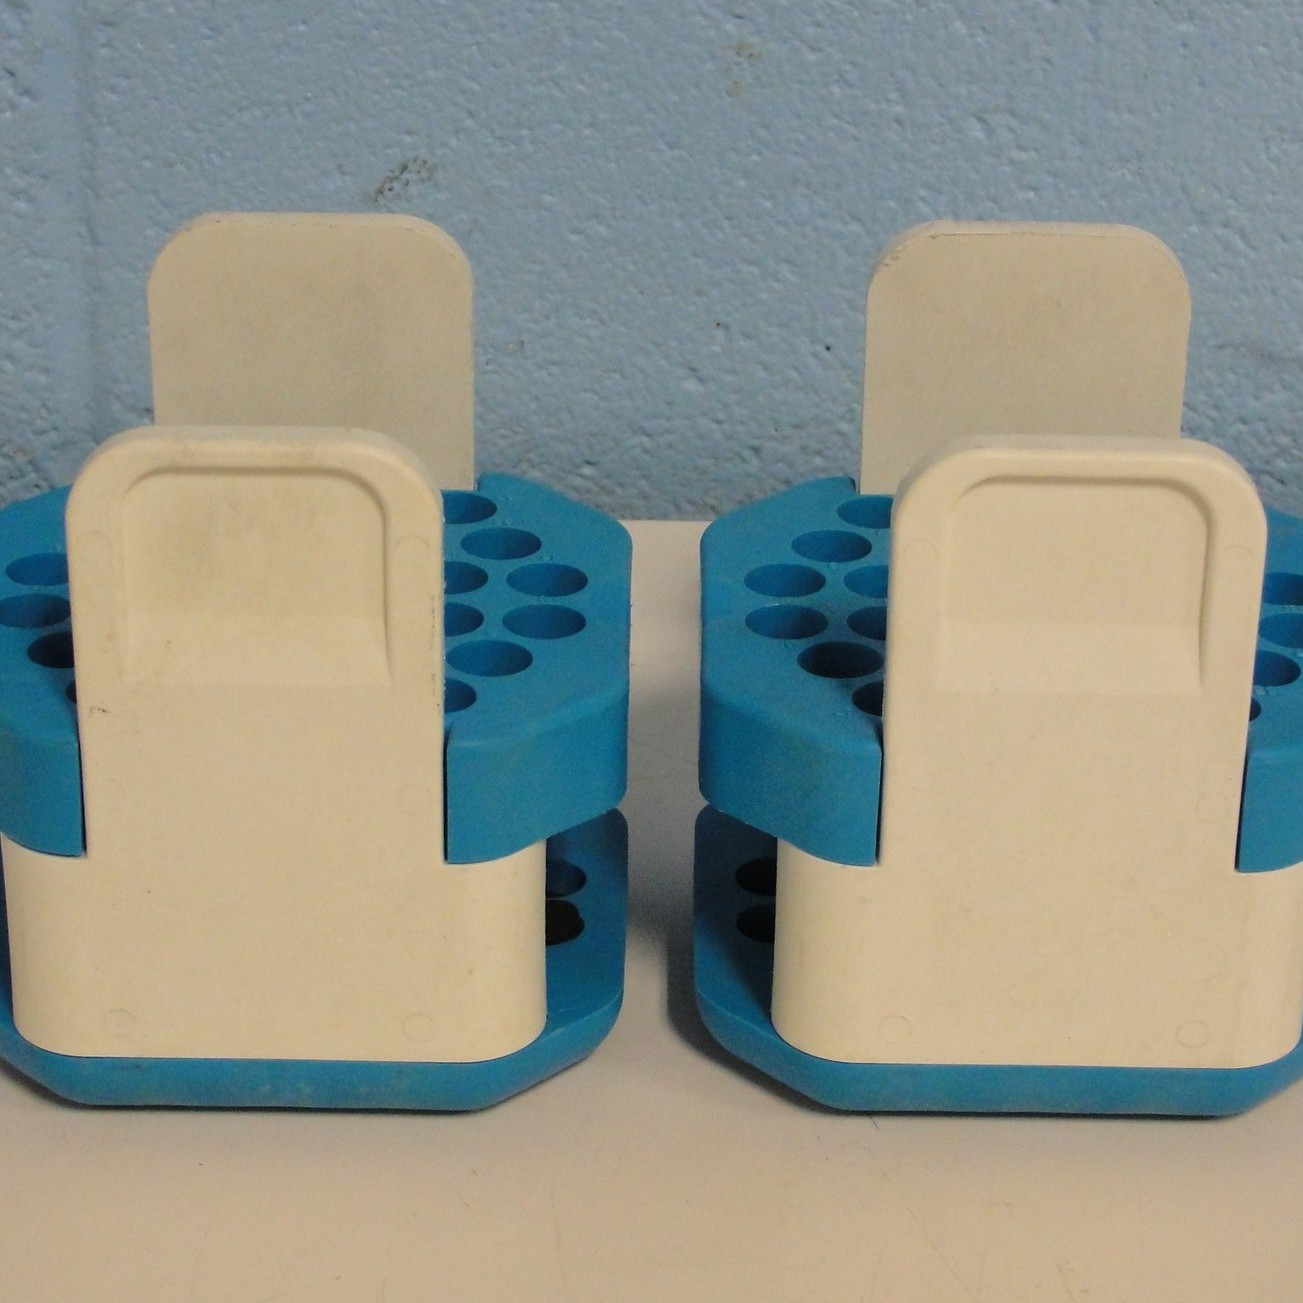 Beckman Coulter TH-4 Rotor (30) Tube Slot Bucket Adapter (Set of 2) Image